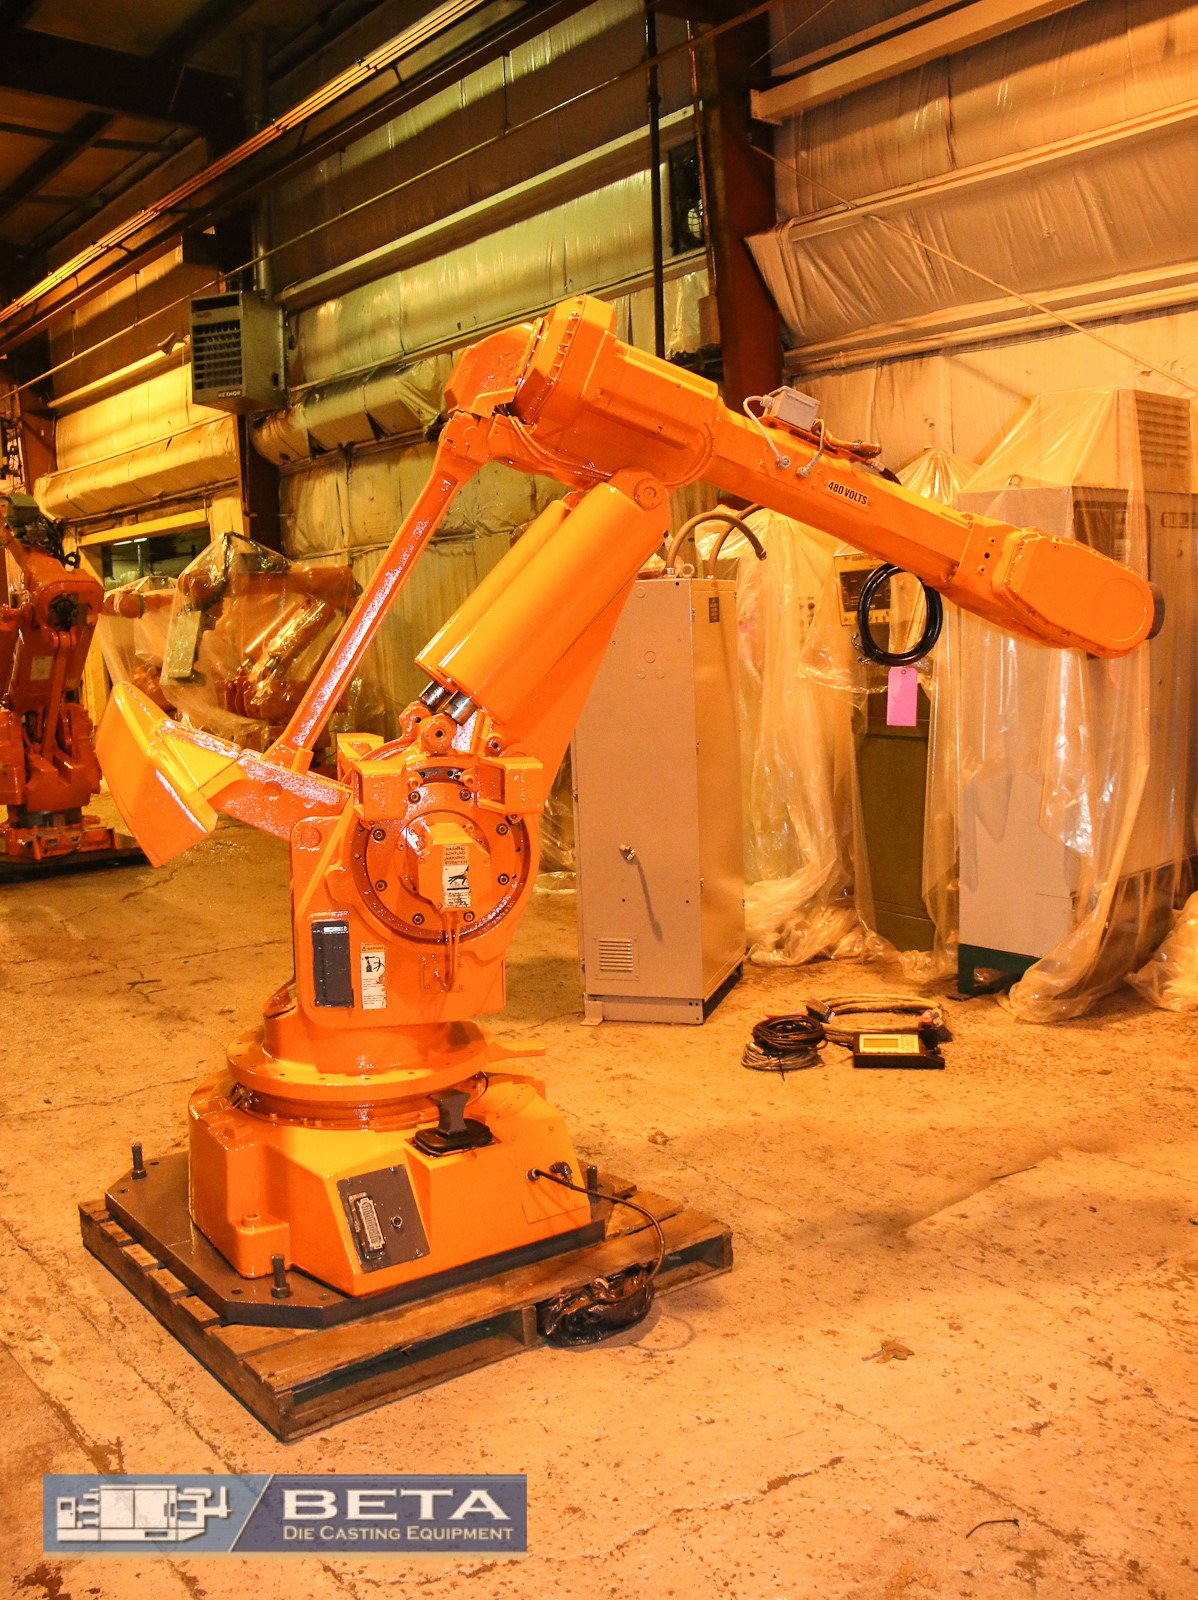 Foundry Industrial Robots